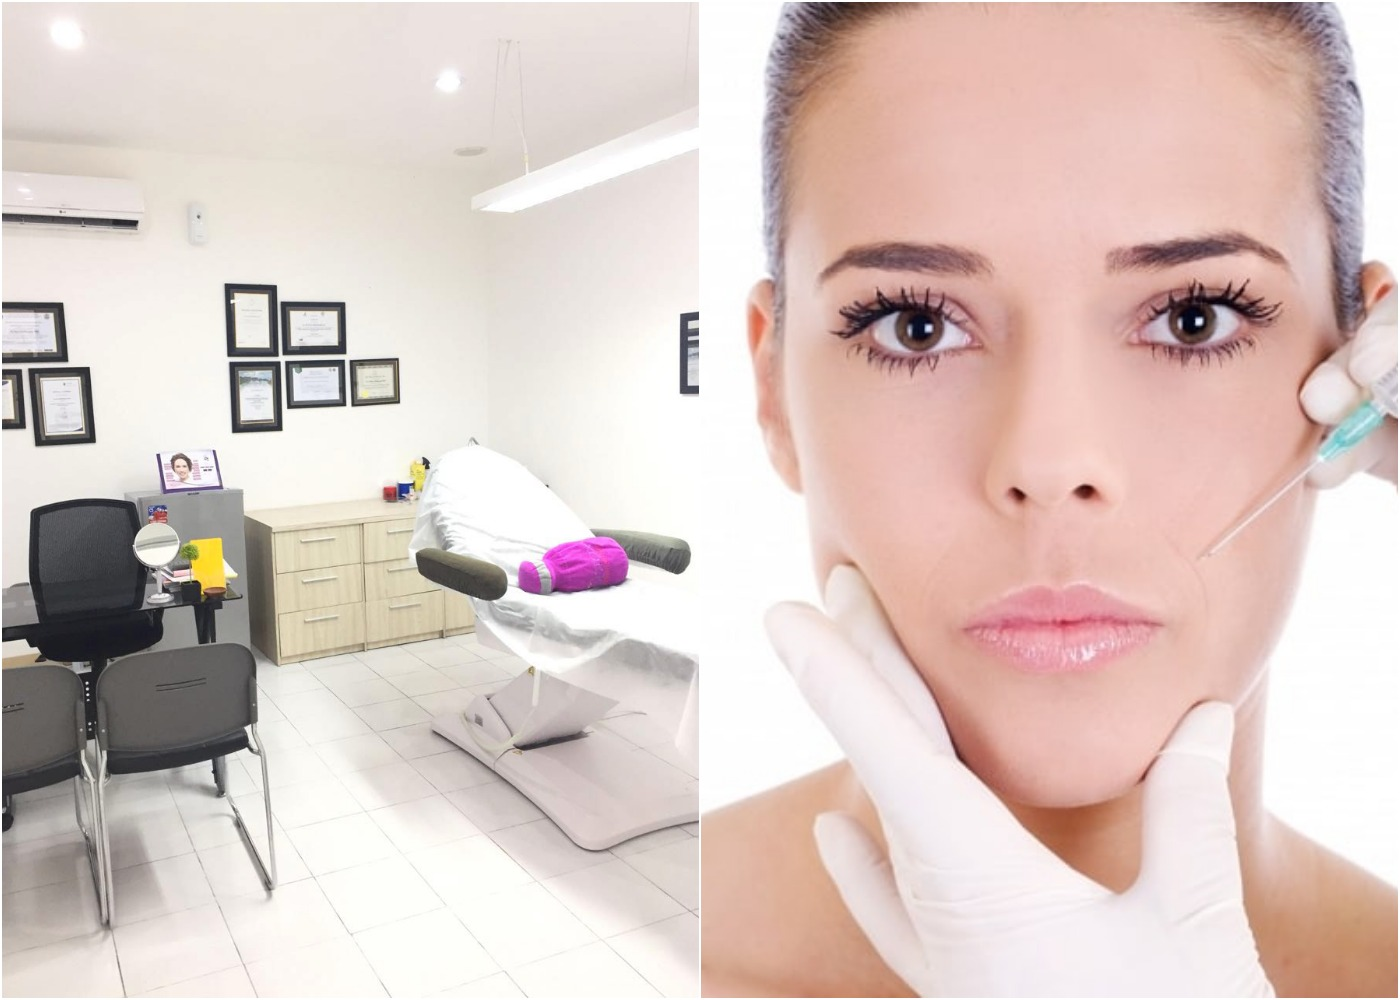 Radiance beauty clinic in Kuta - one of the best medi-spas in Bali, Indonesia